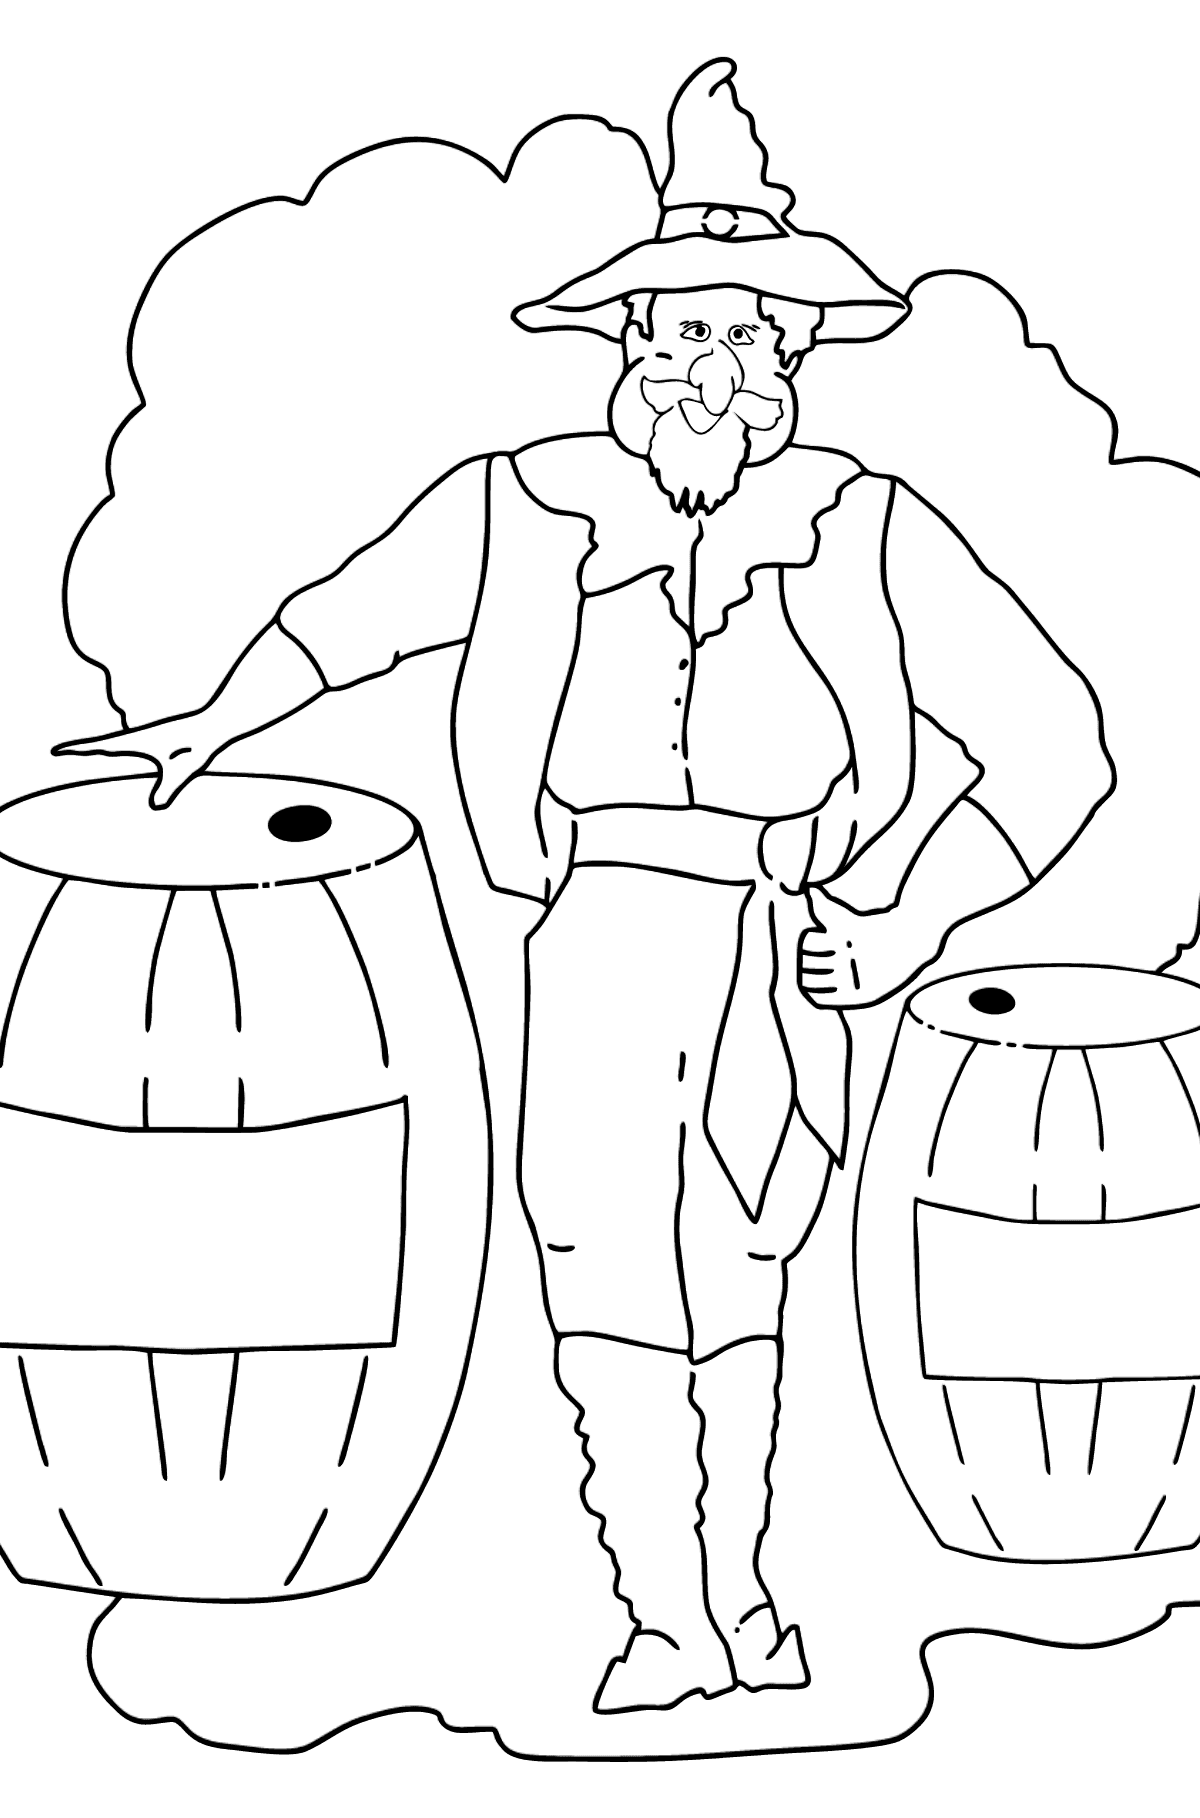 Coloring Page - A Pirate and Lemonade - Coloring Pages for Kids